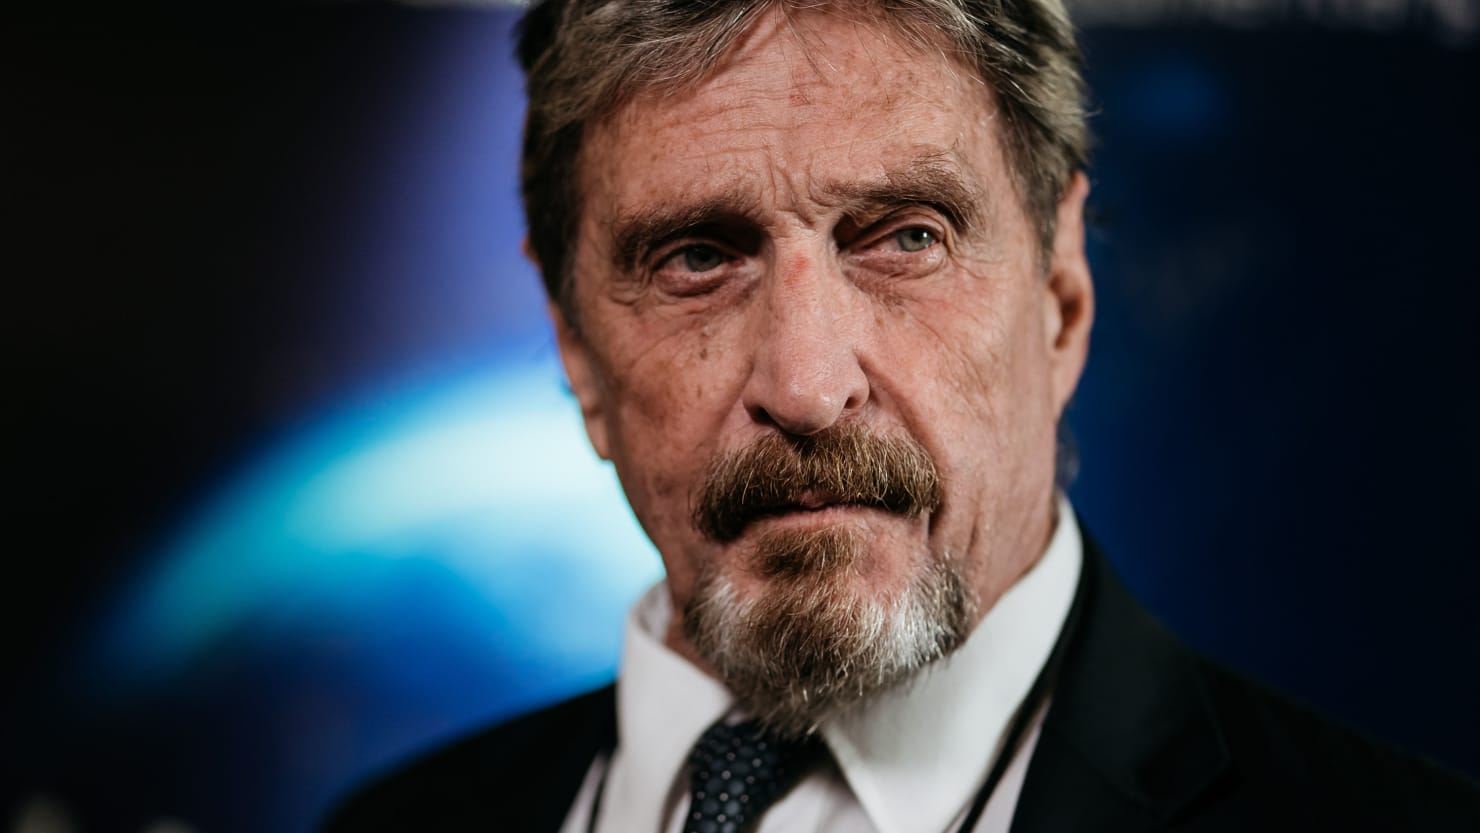 Eccentric Antivirus Rich particular person John McAfee Accused of Making Millions in Unlawful Crypto Schemes